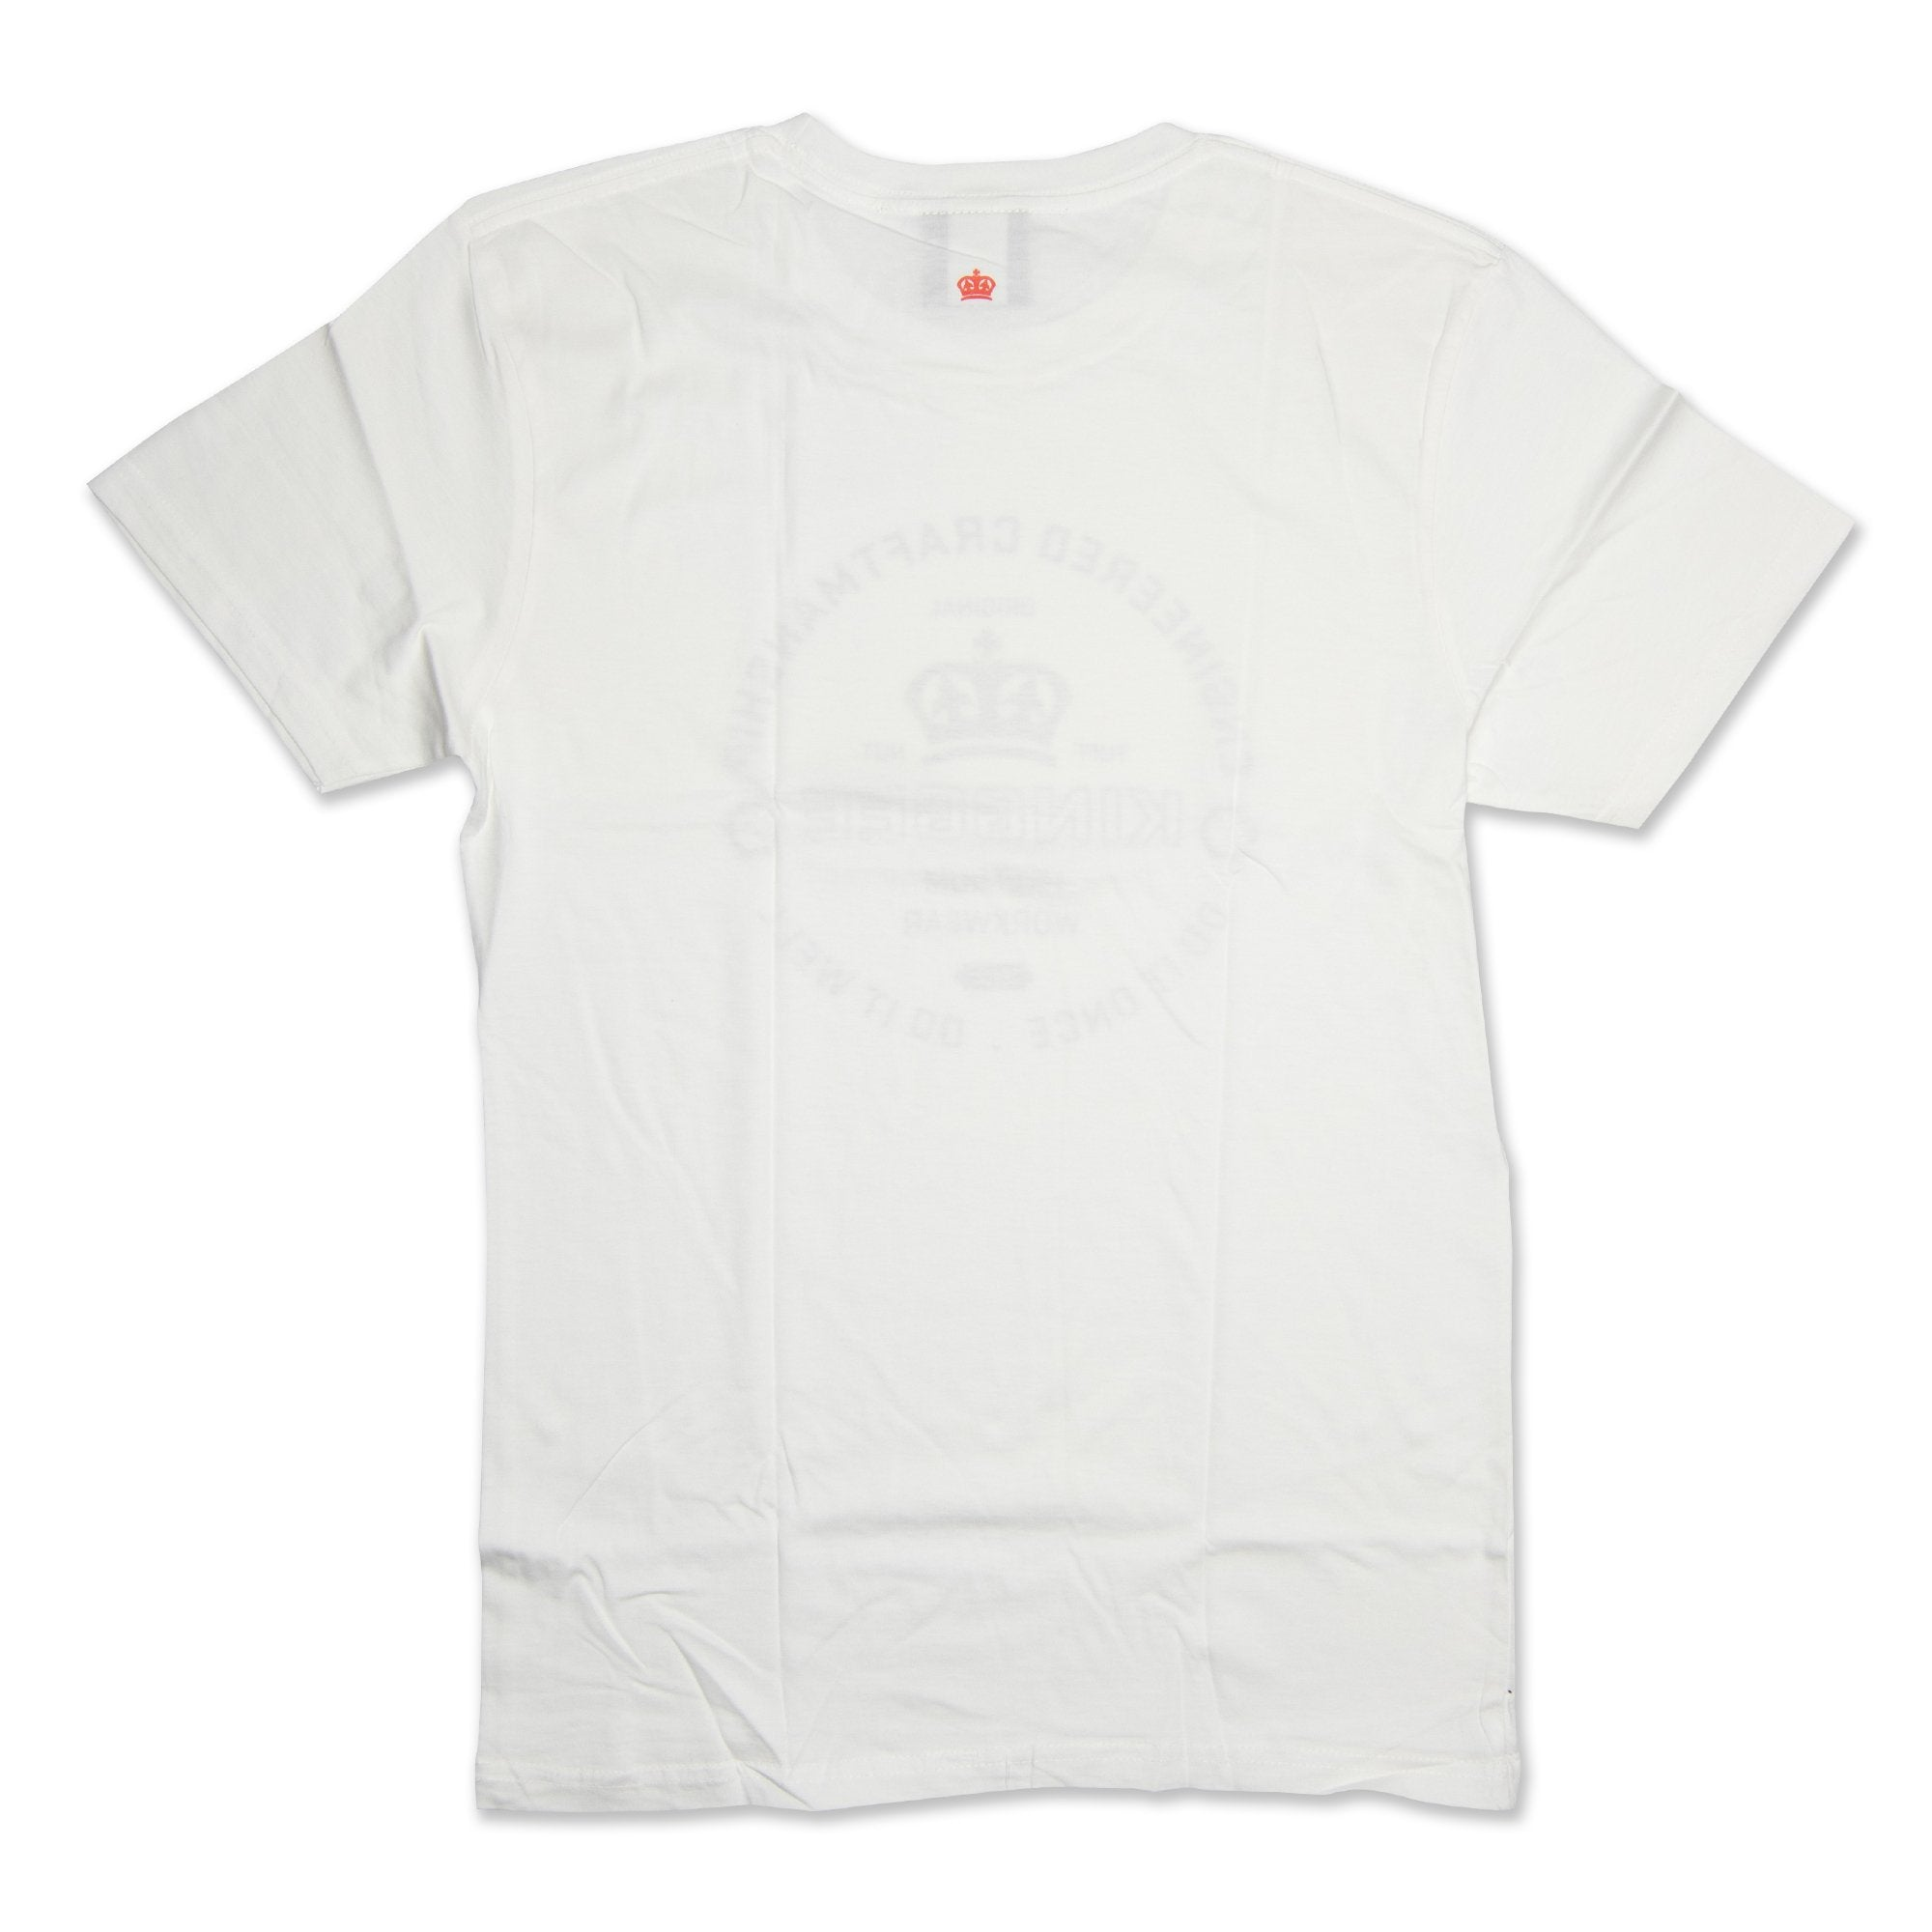 King Gee Tradies T-Shirt - White Workwear King Gee